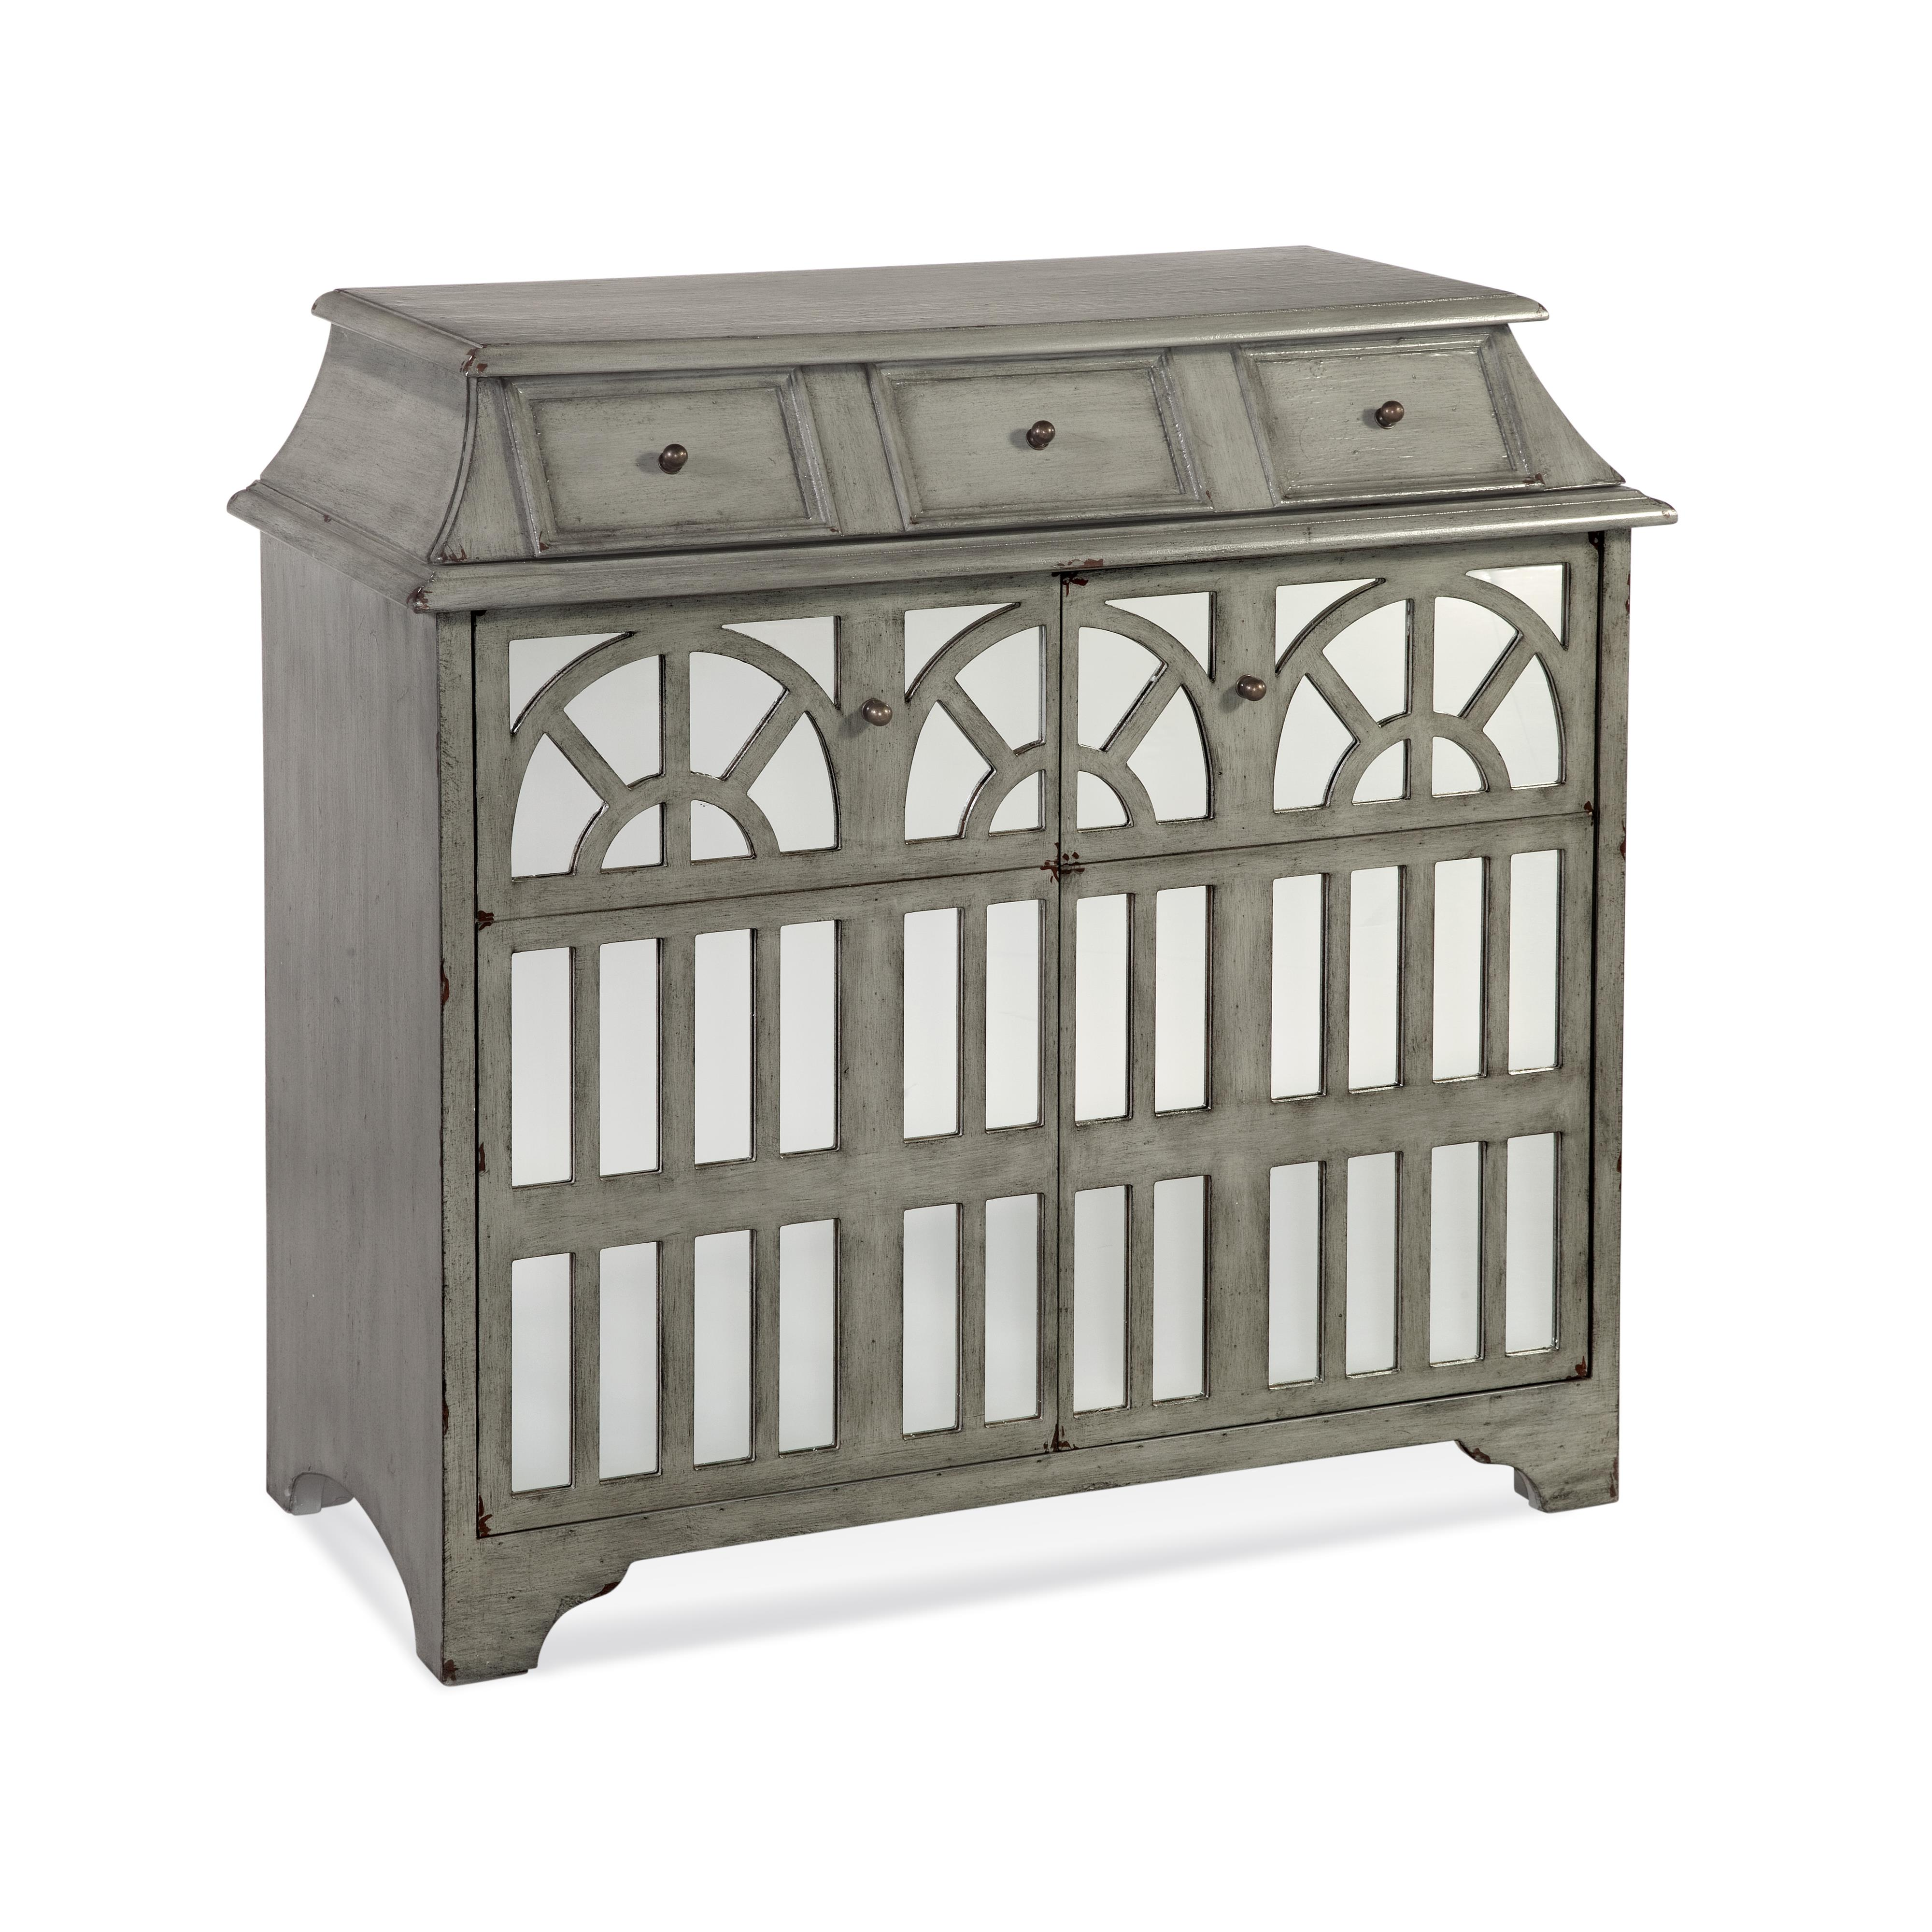 In-Town Borum Hospitality Cabinet by Bassett Mirror at Lapeer Furniture & Mattress Center